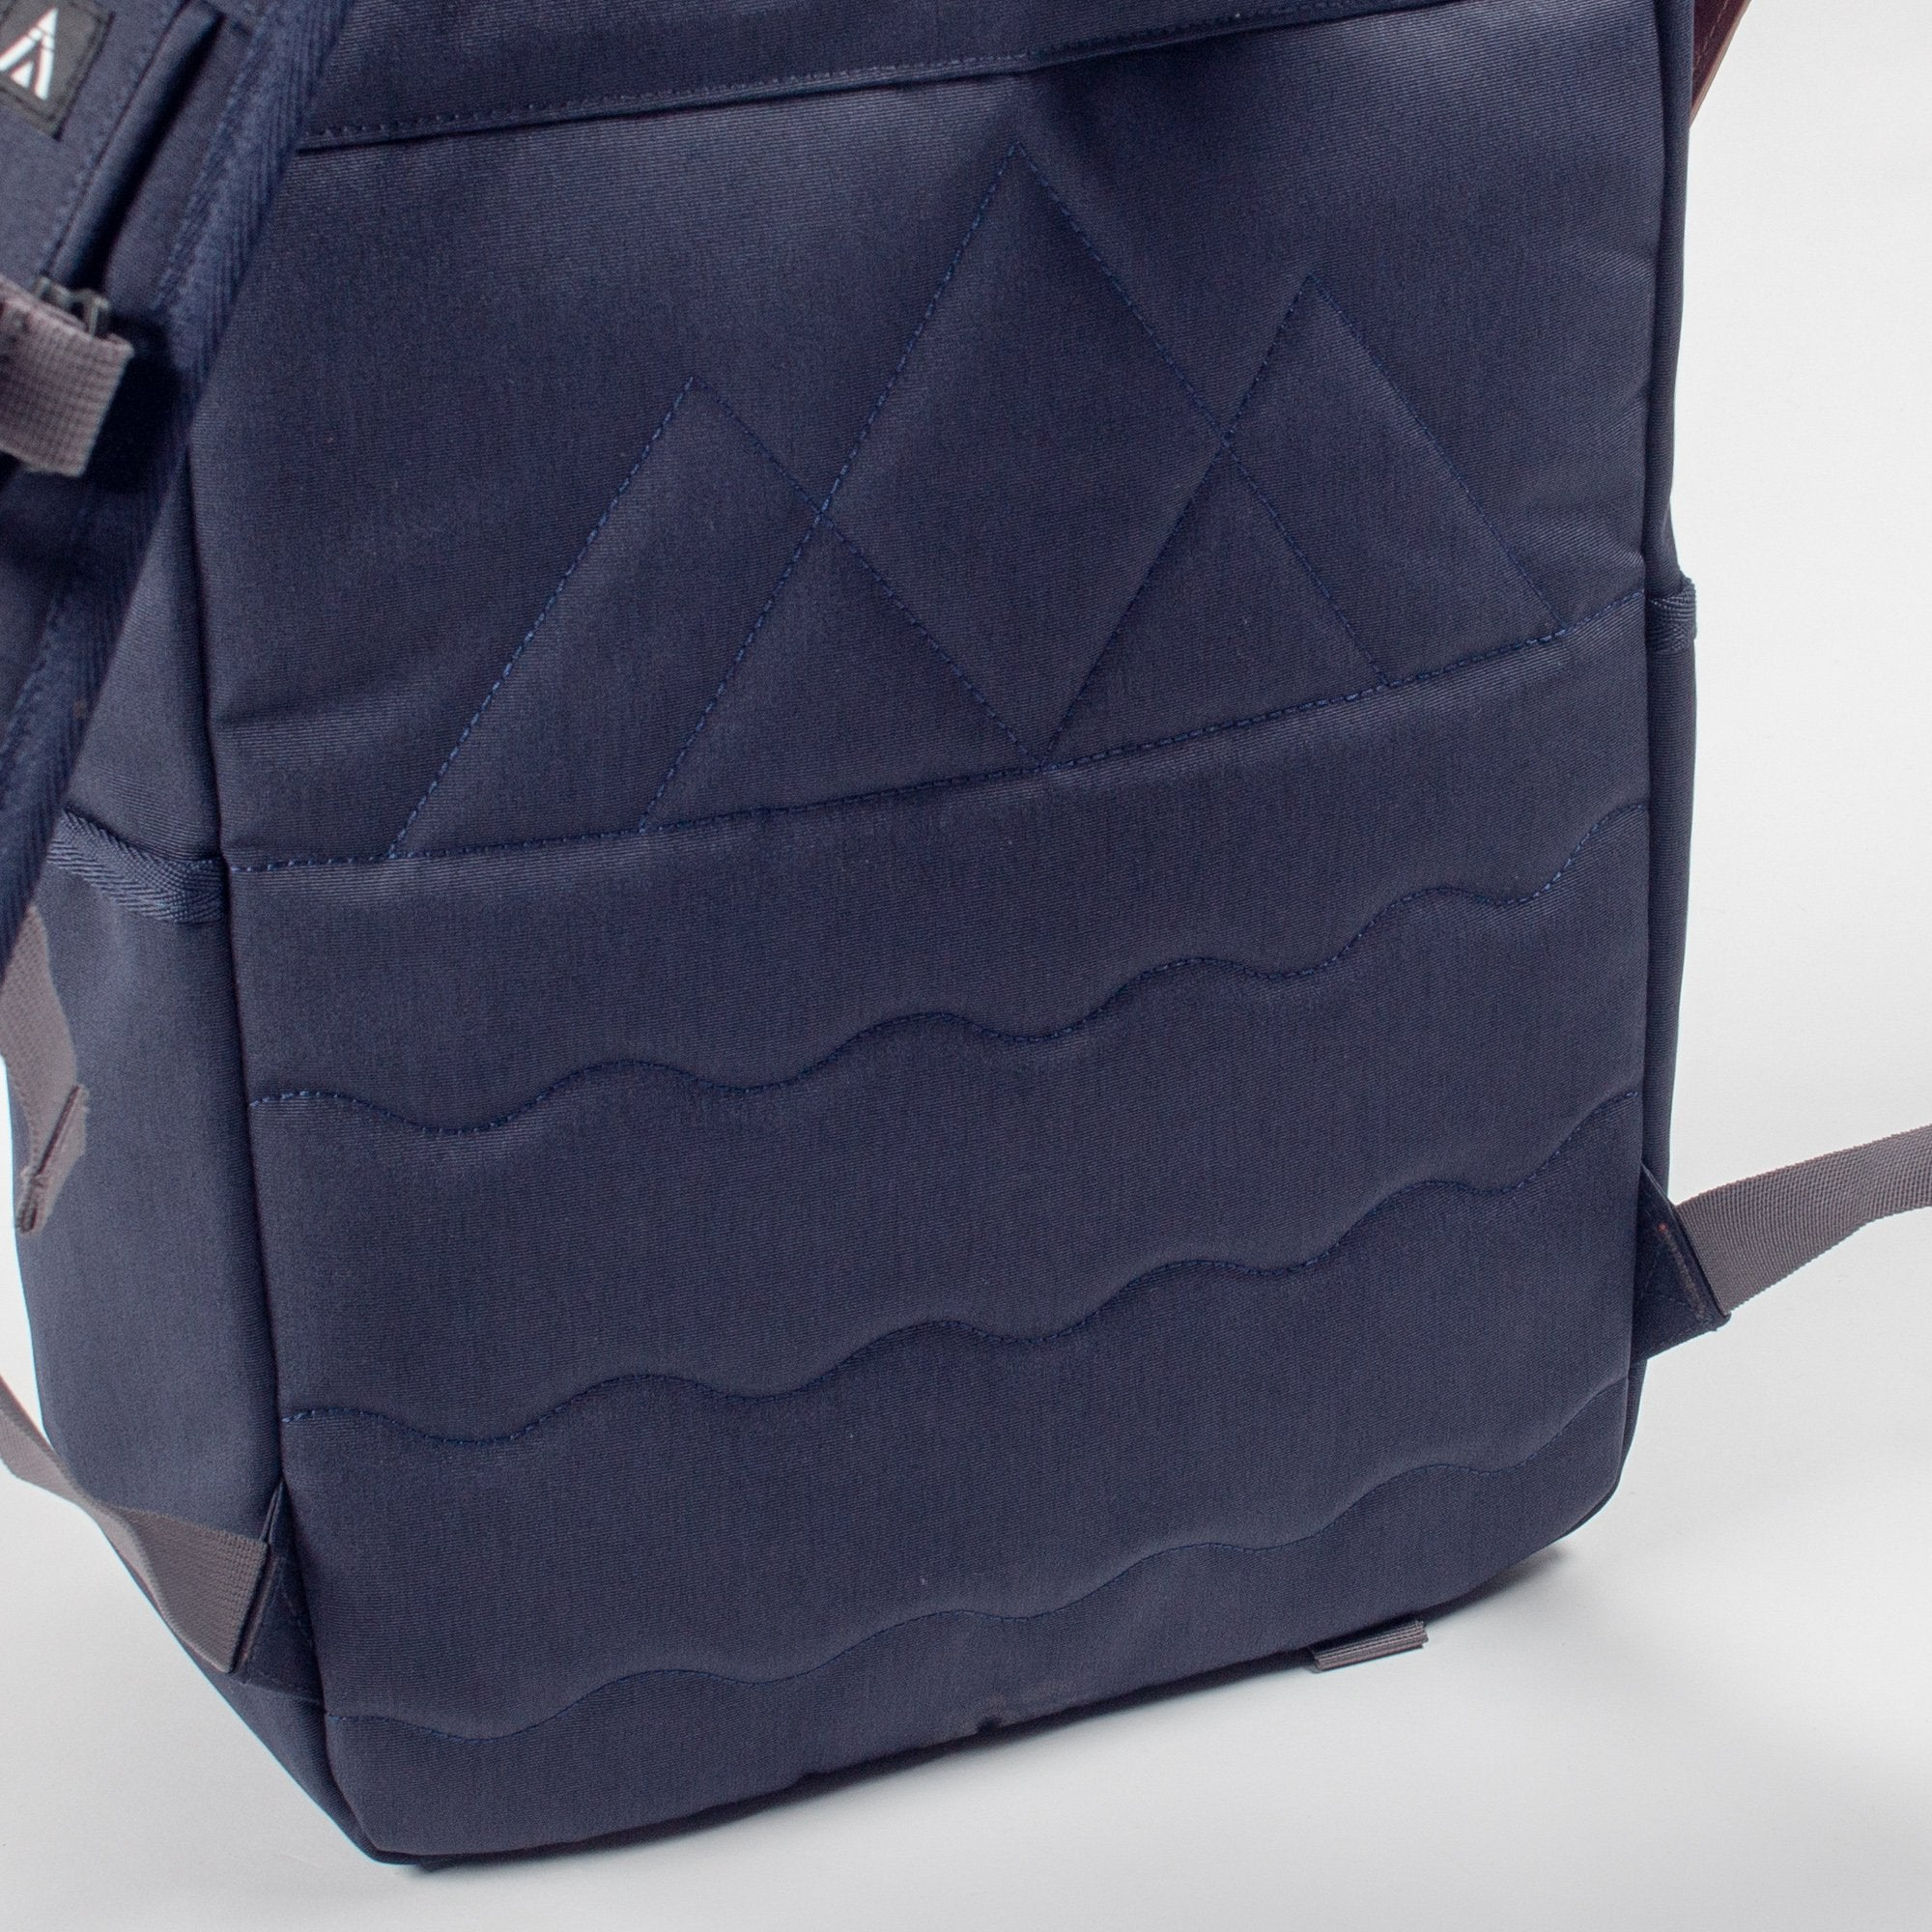 Trip Travel Backpack 30L - Navy Marl image 5